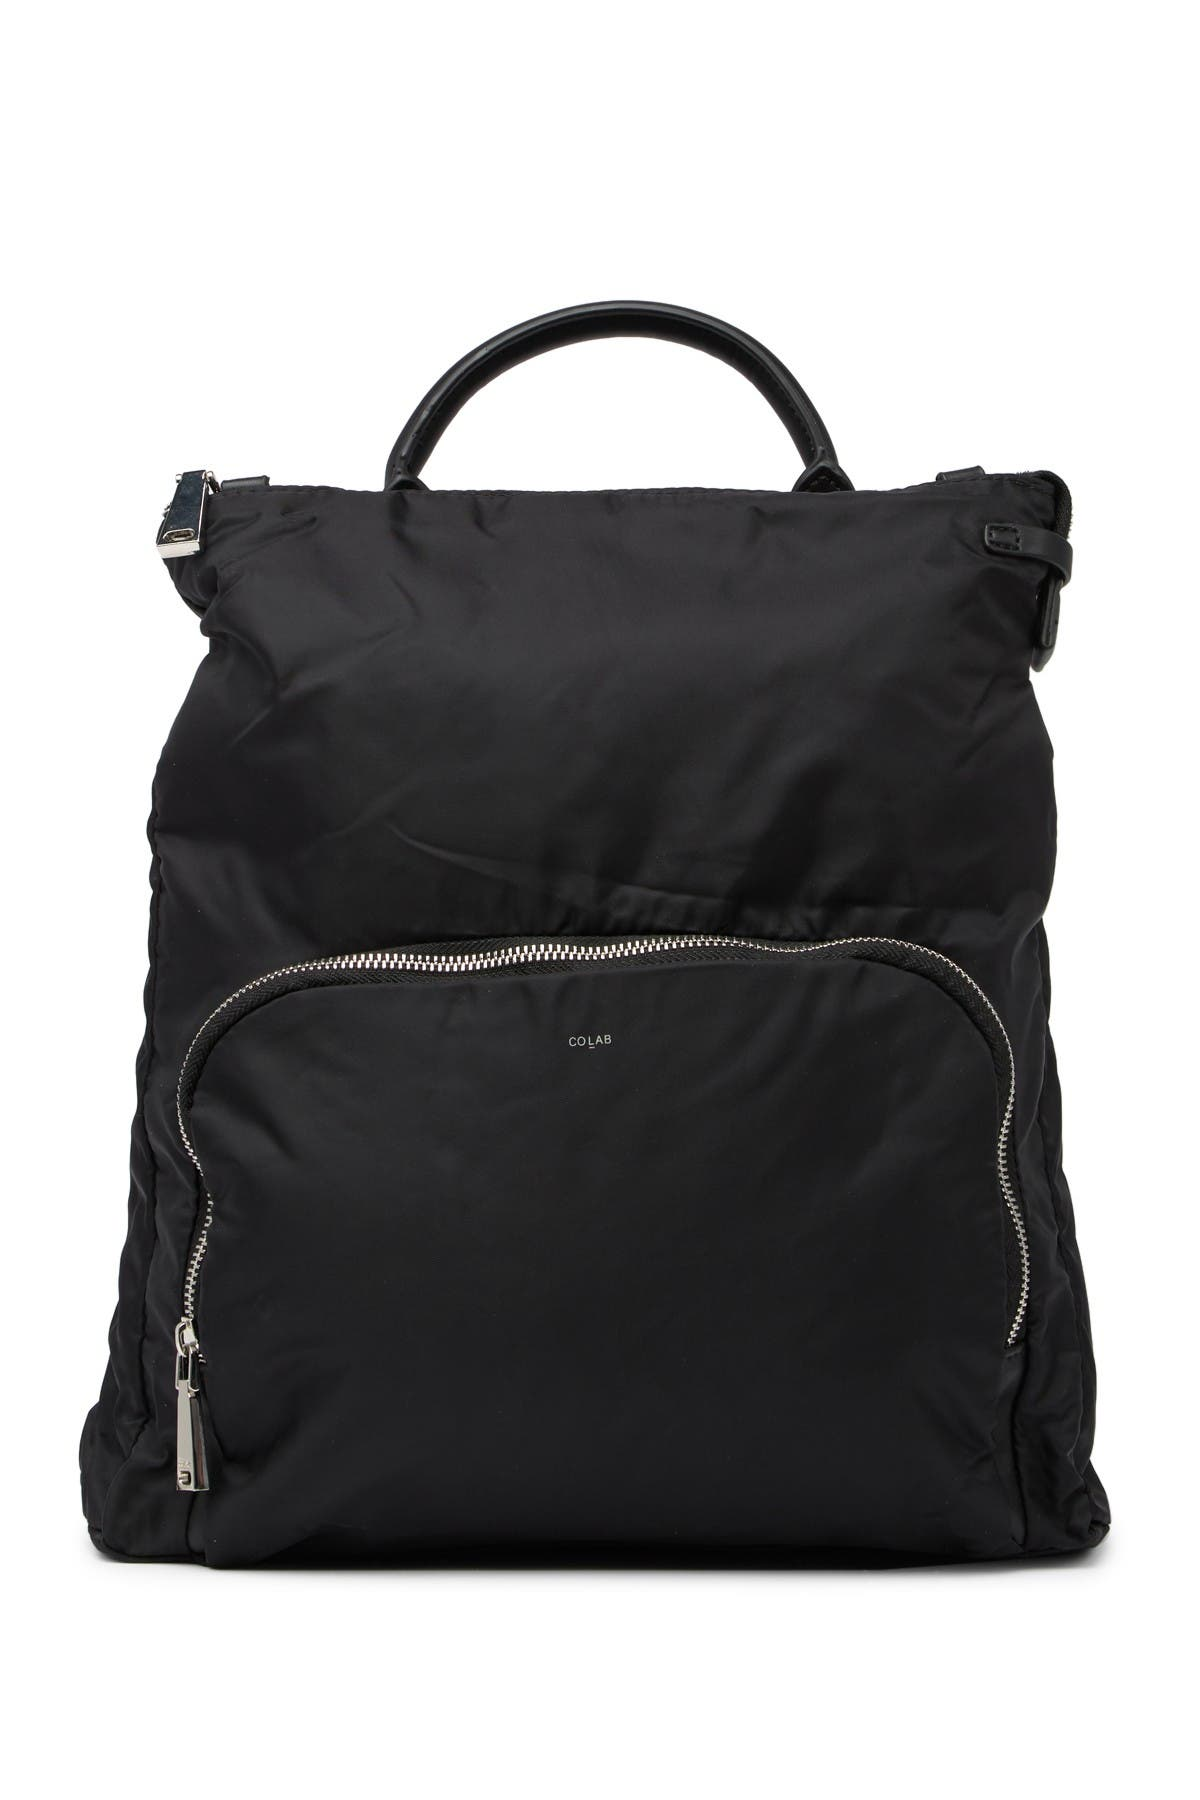 Image of Co-Lab Nylon Convertible Messenger Backpack